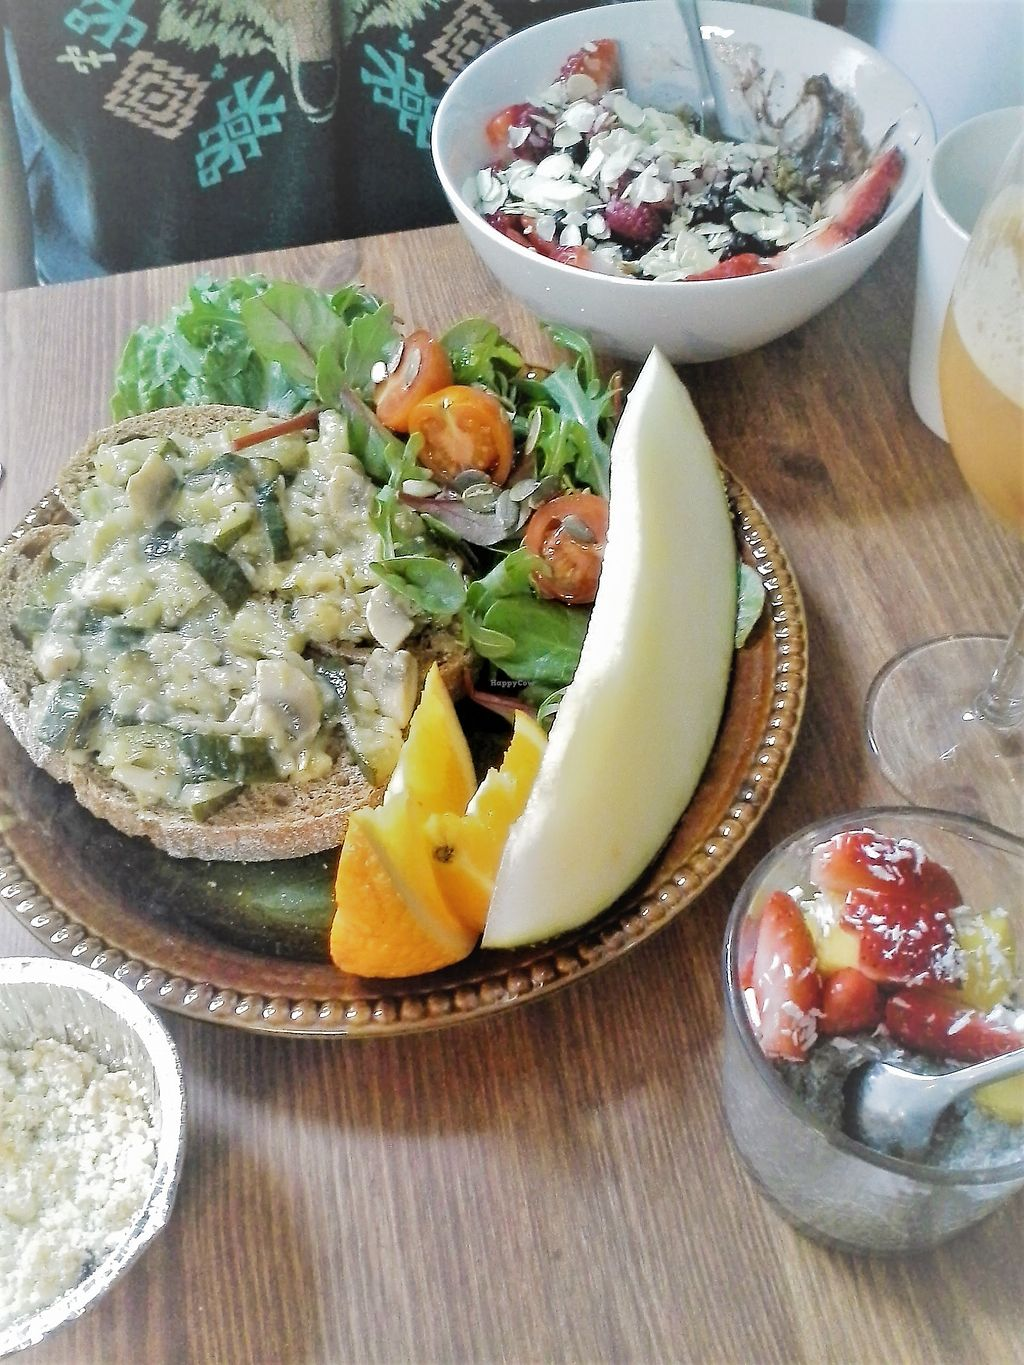 """Photo of Lotta Love  by <a href=""""/members/profile/vegankiwis"""">vegankiwis</a> <br/>Savoury menu and acai bowl <br/> June 30, 2017  - <a href='/contact/abuse/image/53915/275054'>Report</a>"""